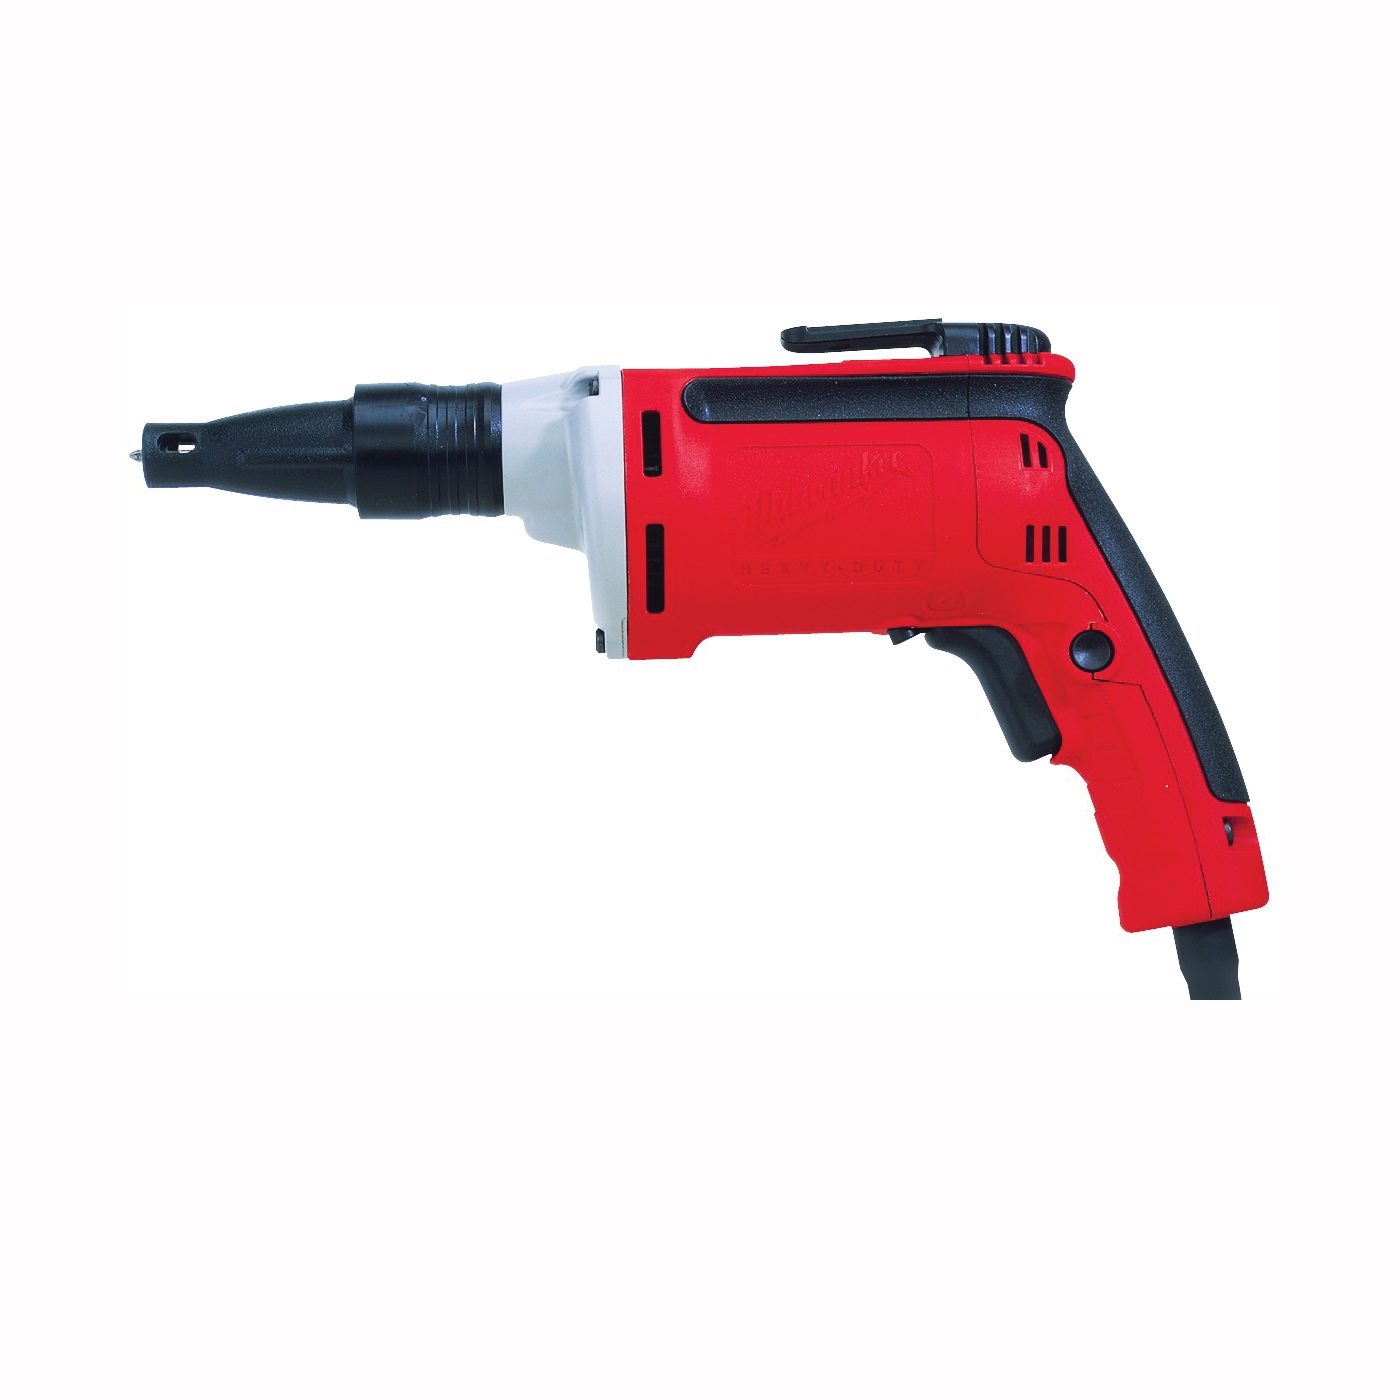 Picture of Milwaukee 6742-20 Screwdriver, 120 V, 1/4 in Chuck, Hexagonal Chuck, 0 to 4000 rpm Speed